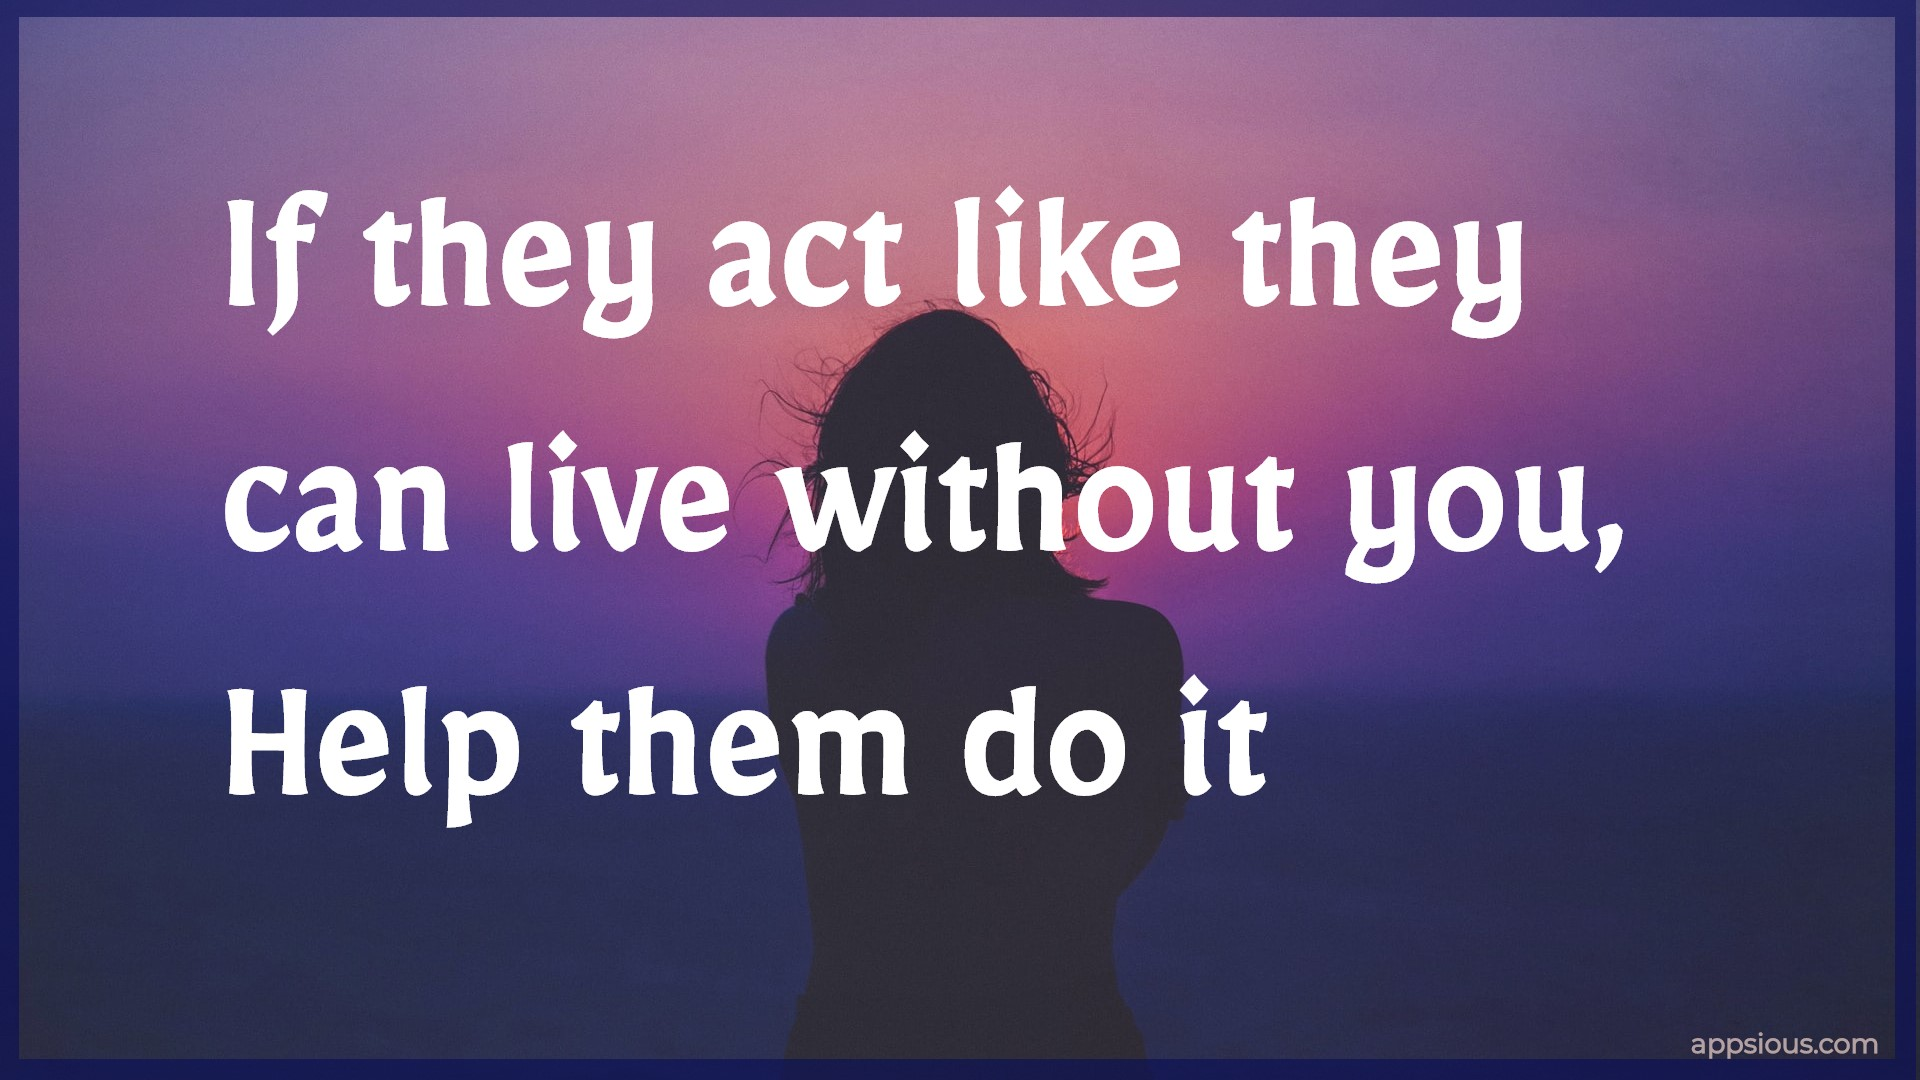 If they act like they can live without you, Help them do it